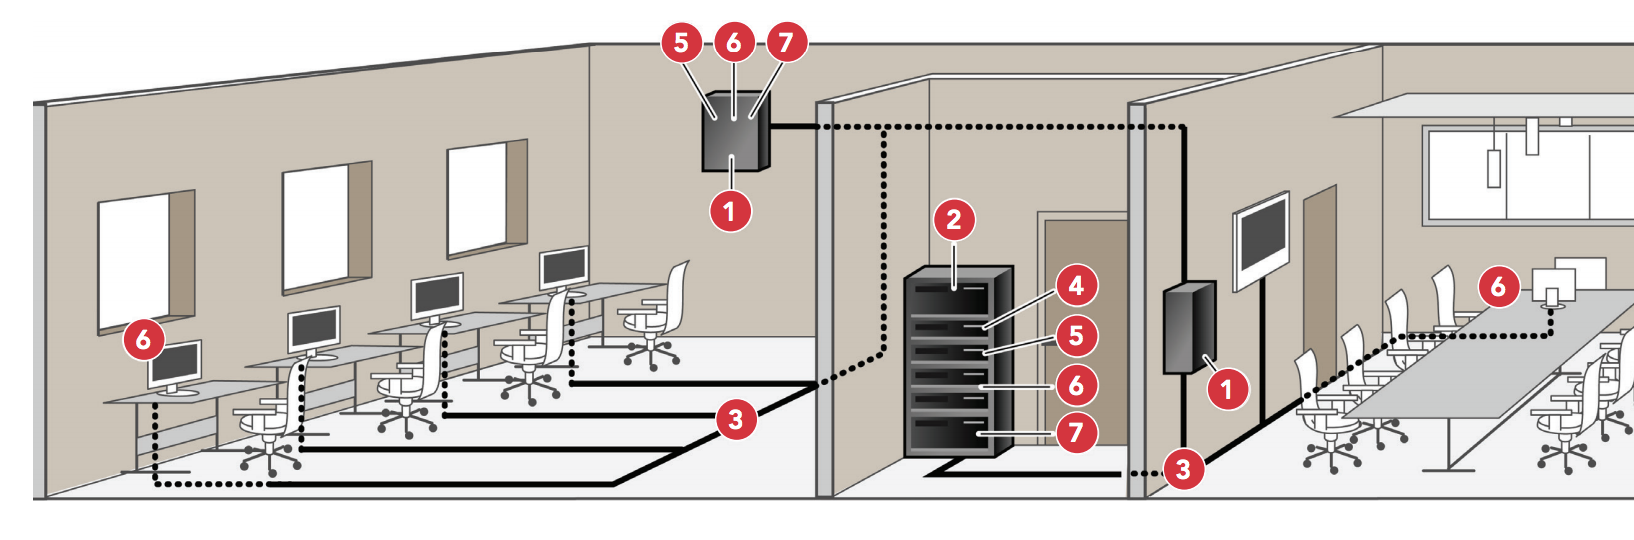 Accu Insider Occ Conduit Wiring Futureproof System Av Solutions For Collaboration From